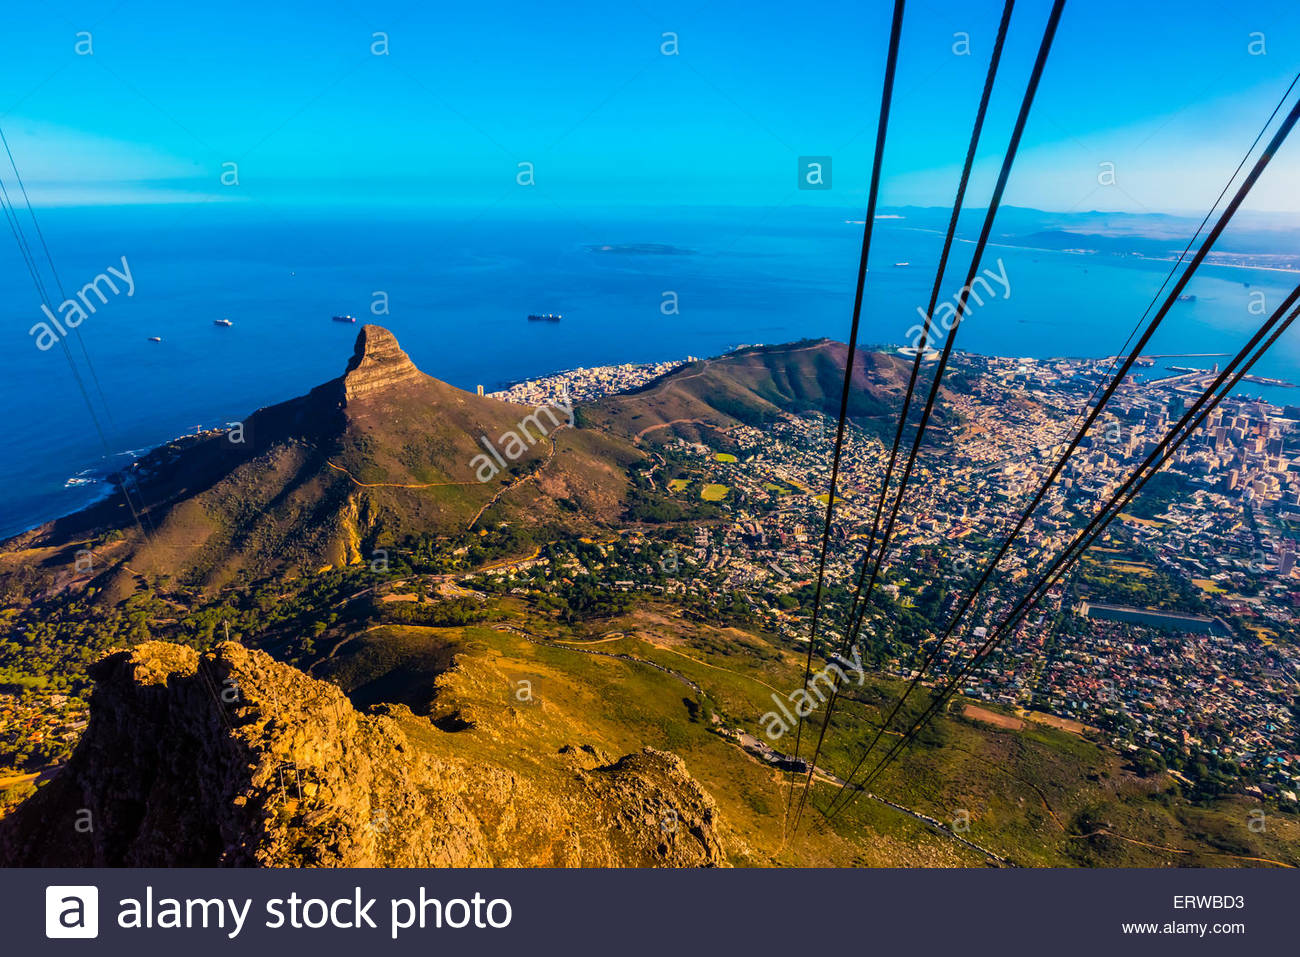 Table Mountain Aerial Cableway, Table Mountain National Park, Cape Town, South Africa. The cable car climbs vertically - Stock Image